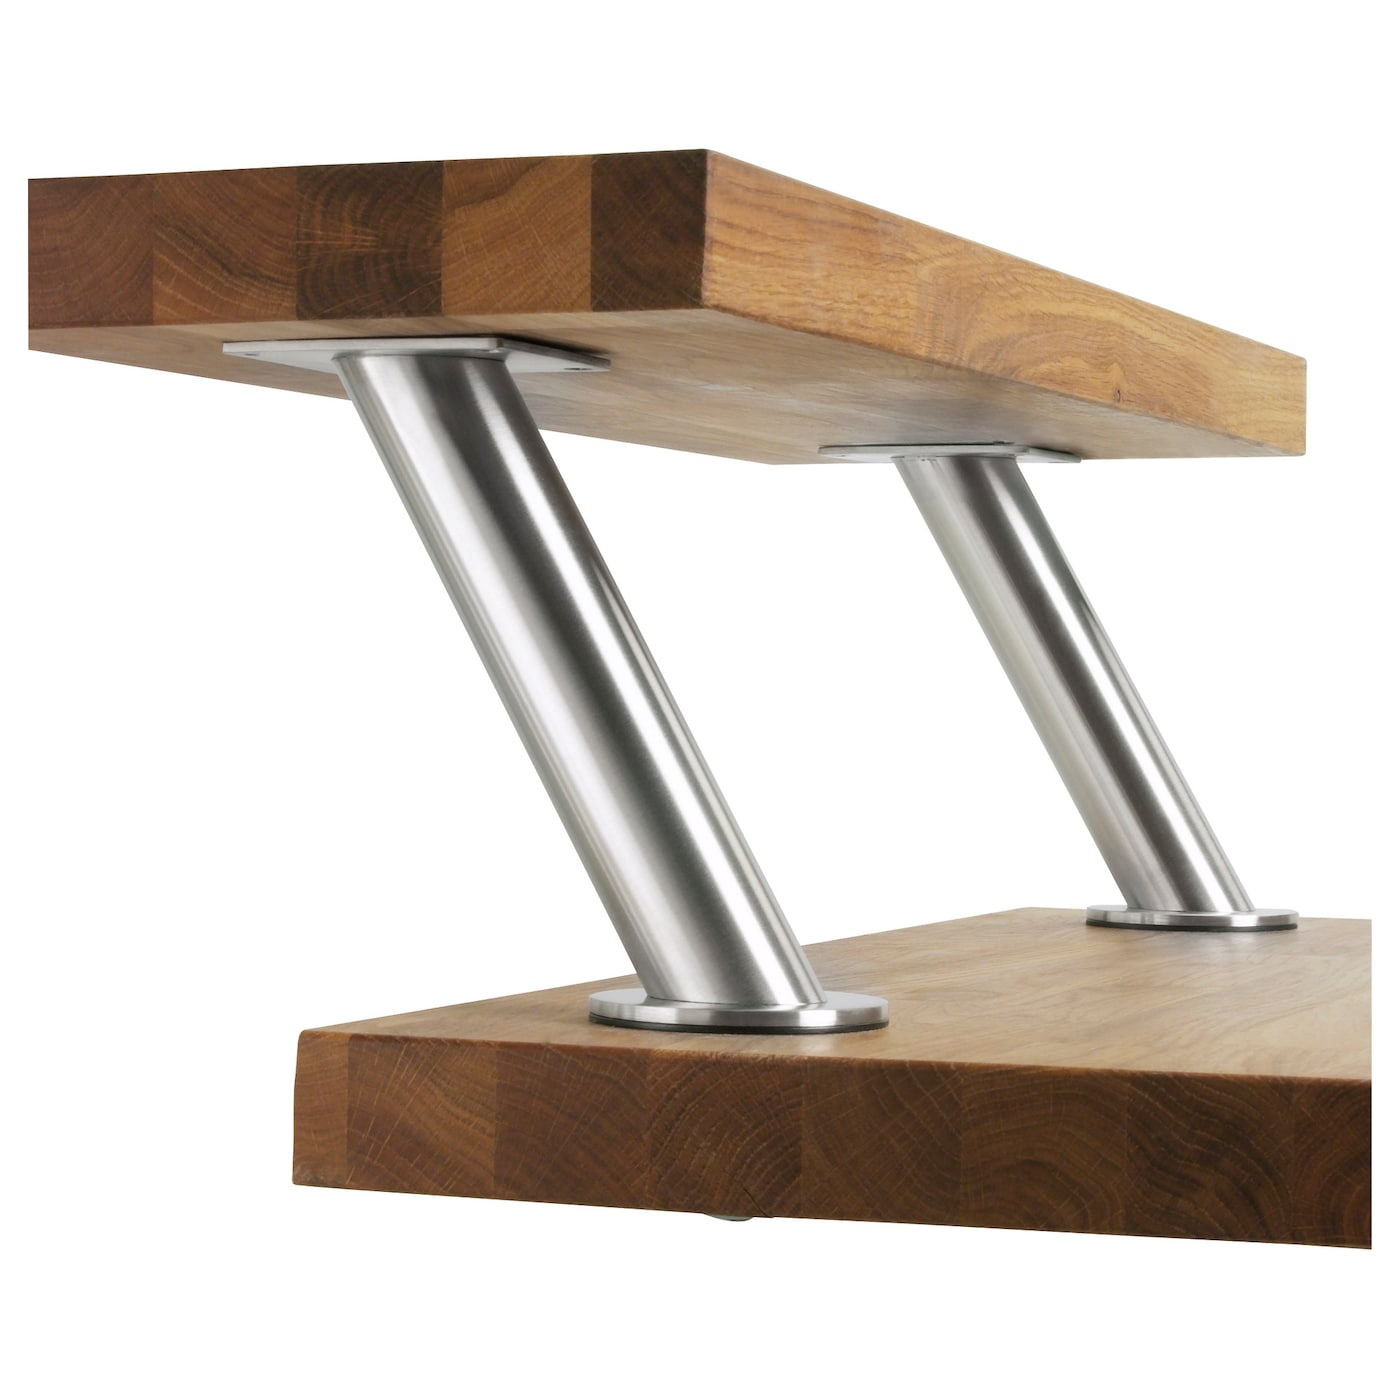 Capita bracket stainless steel ikea for Mueble bar ikea